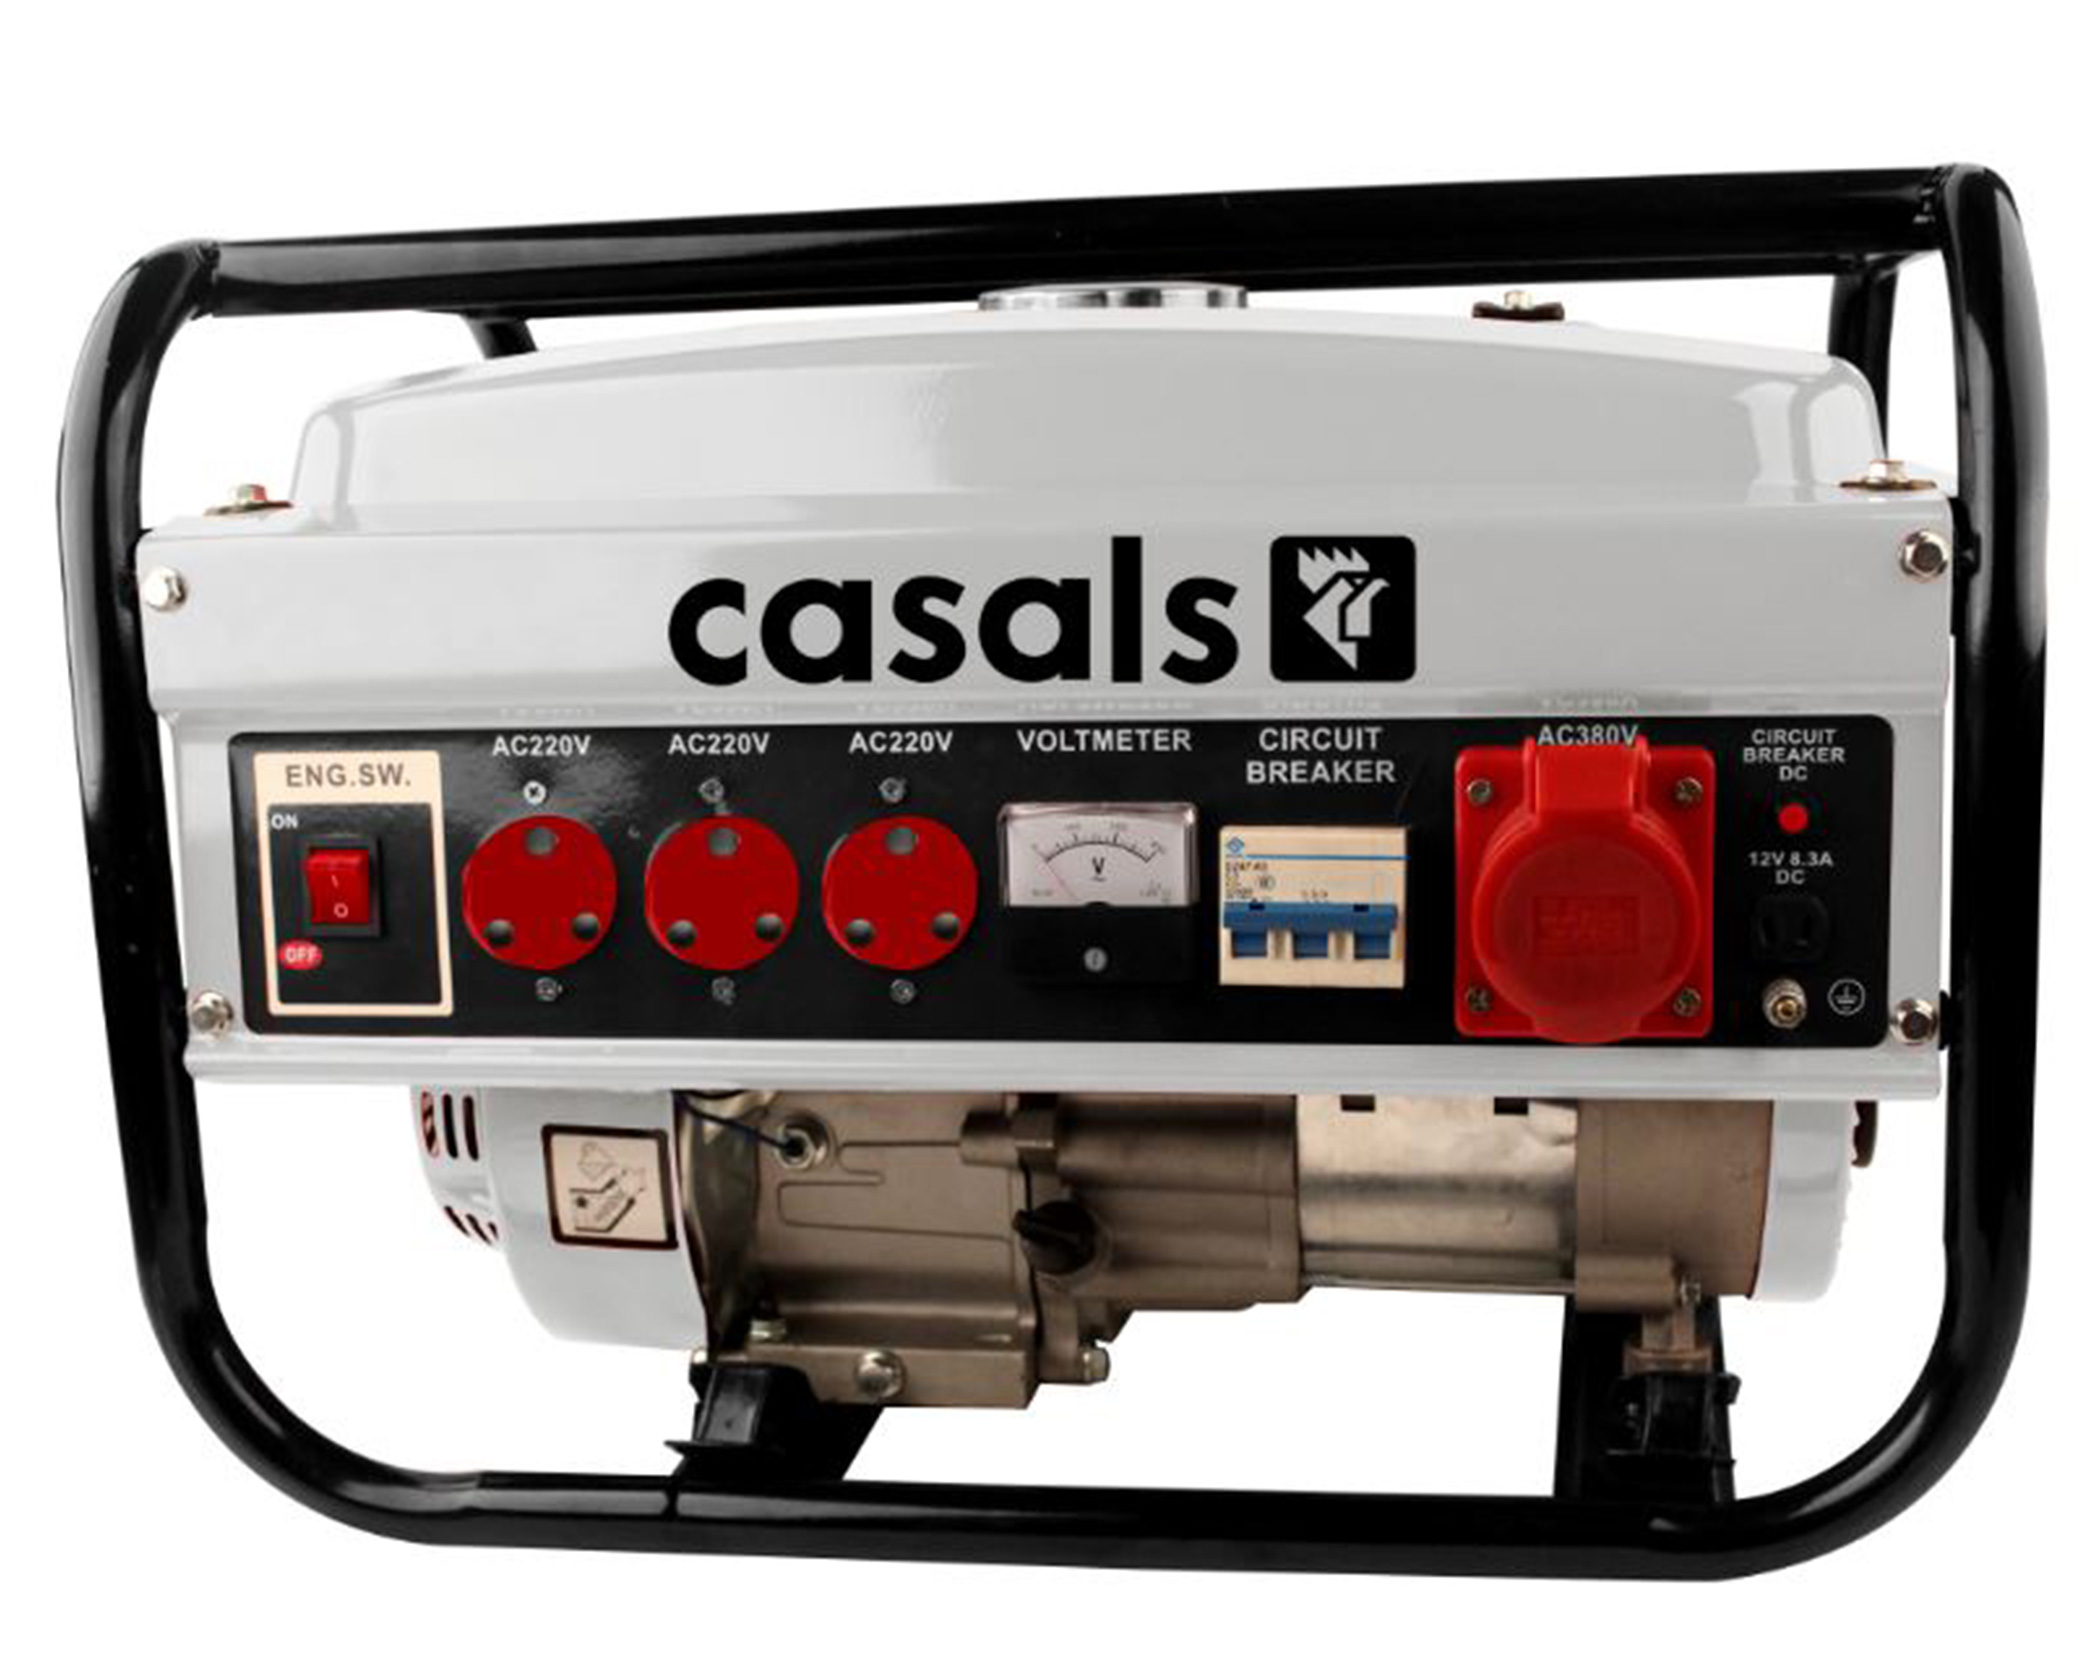 Casals Generator Recoil Start Steel Grey 3 Phase 4 Stroke 2500w Circuit Breaker Dc